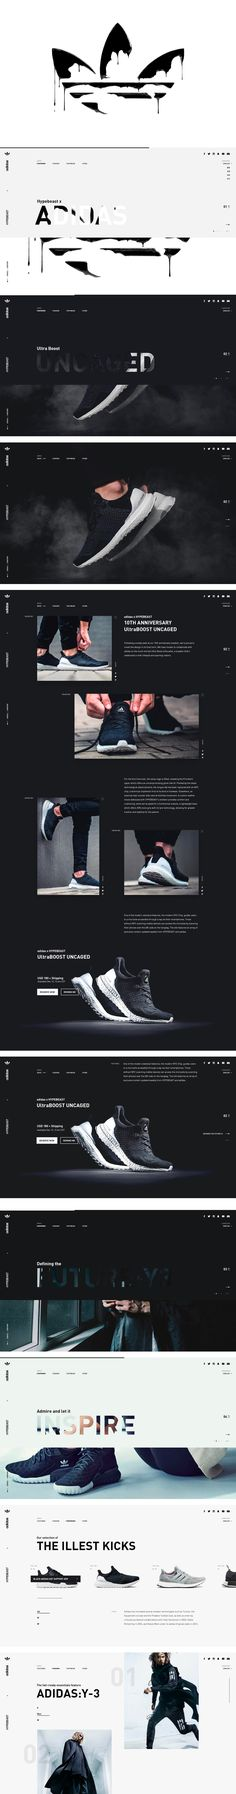 Hypebeast Pitch by Refresh Studio